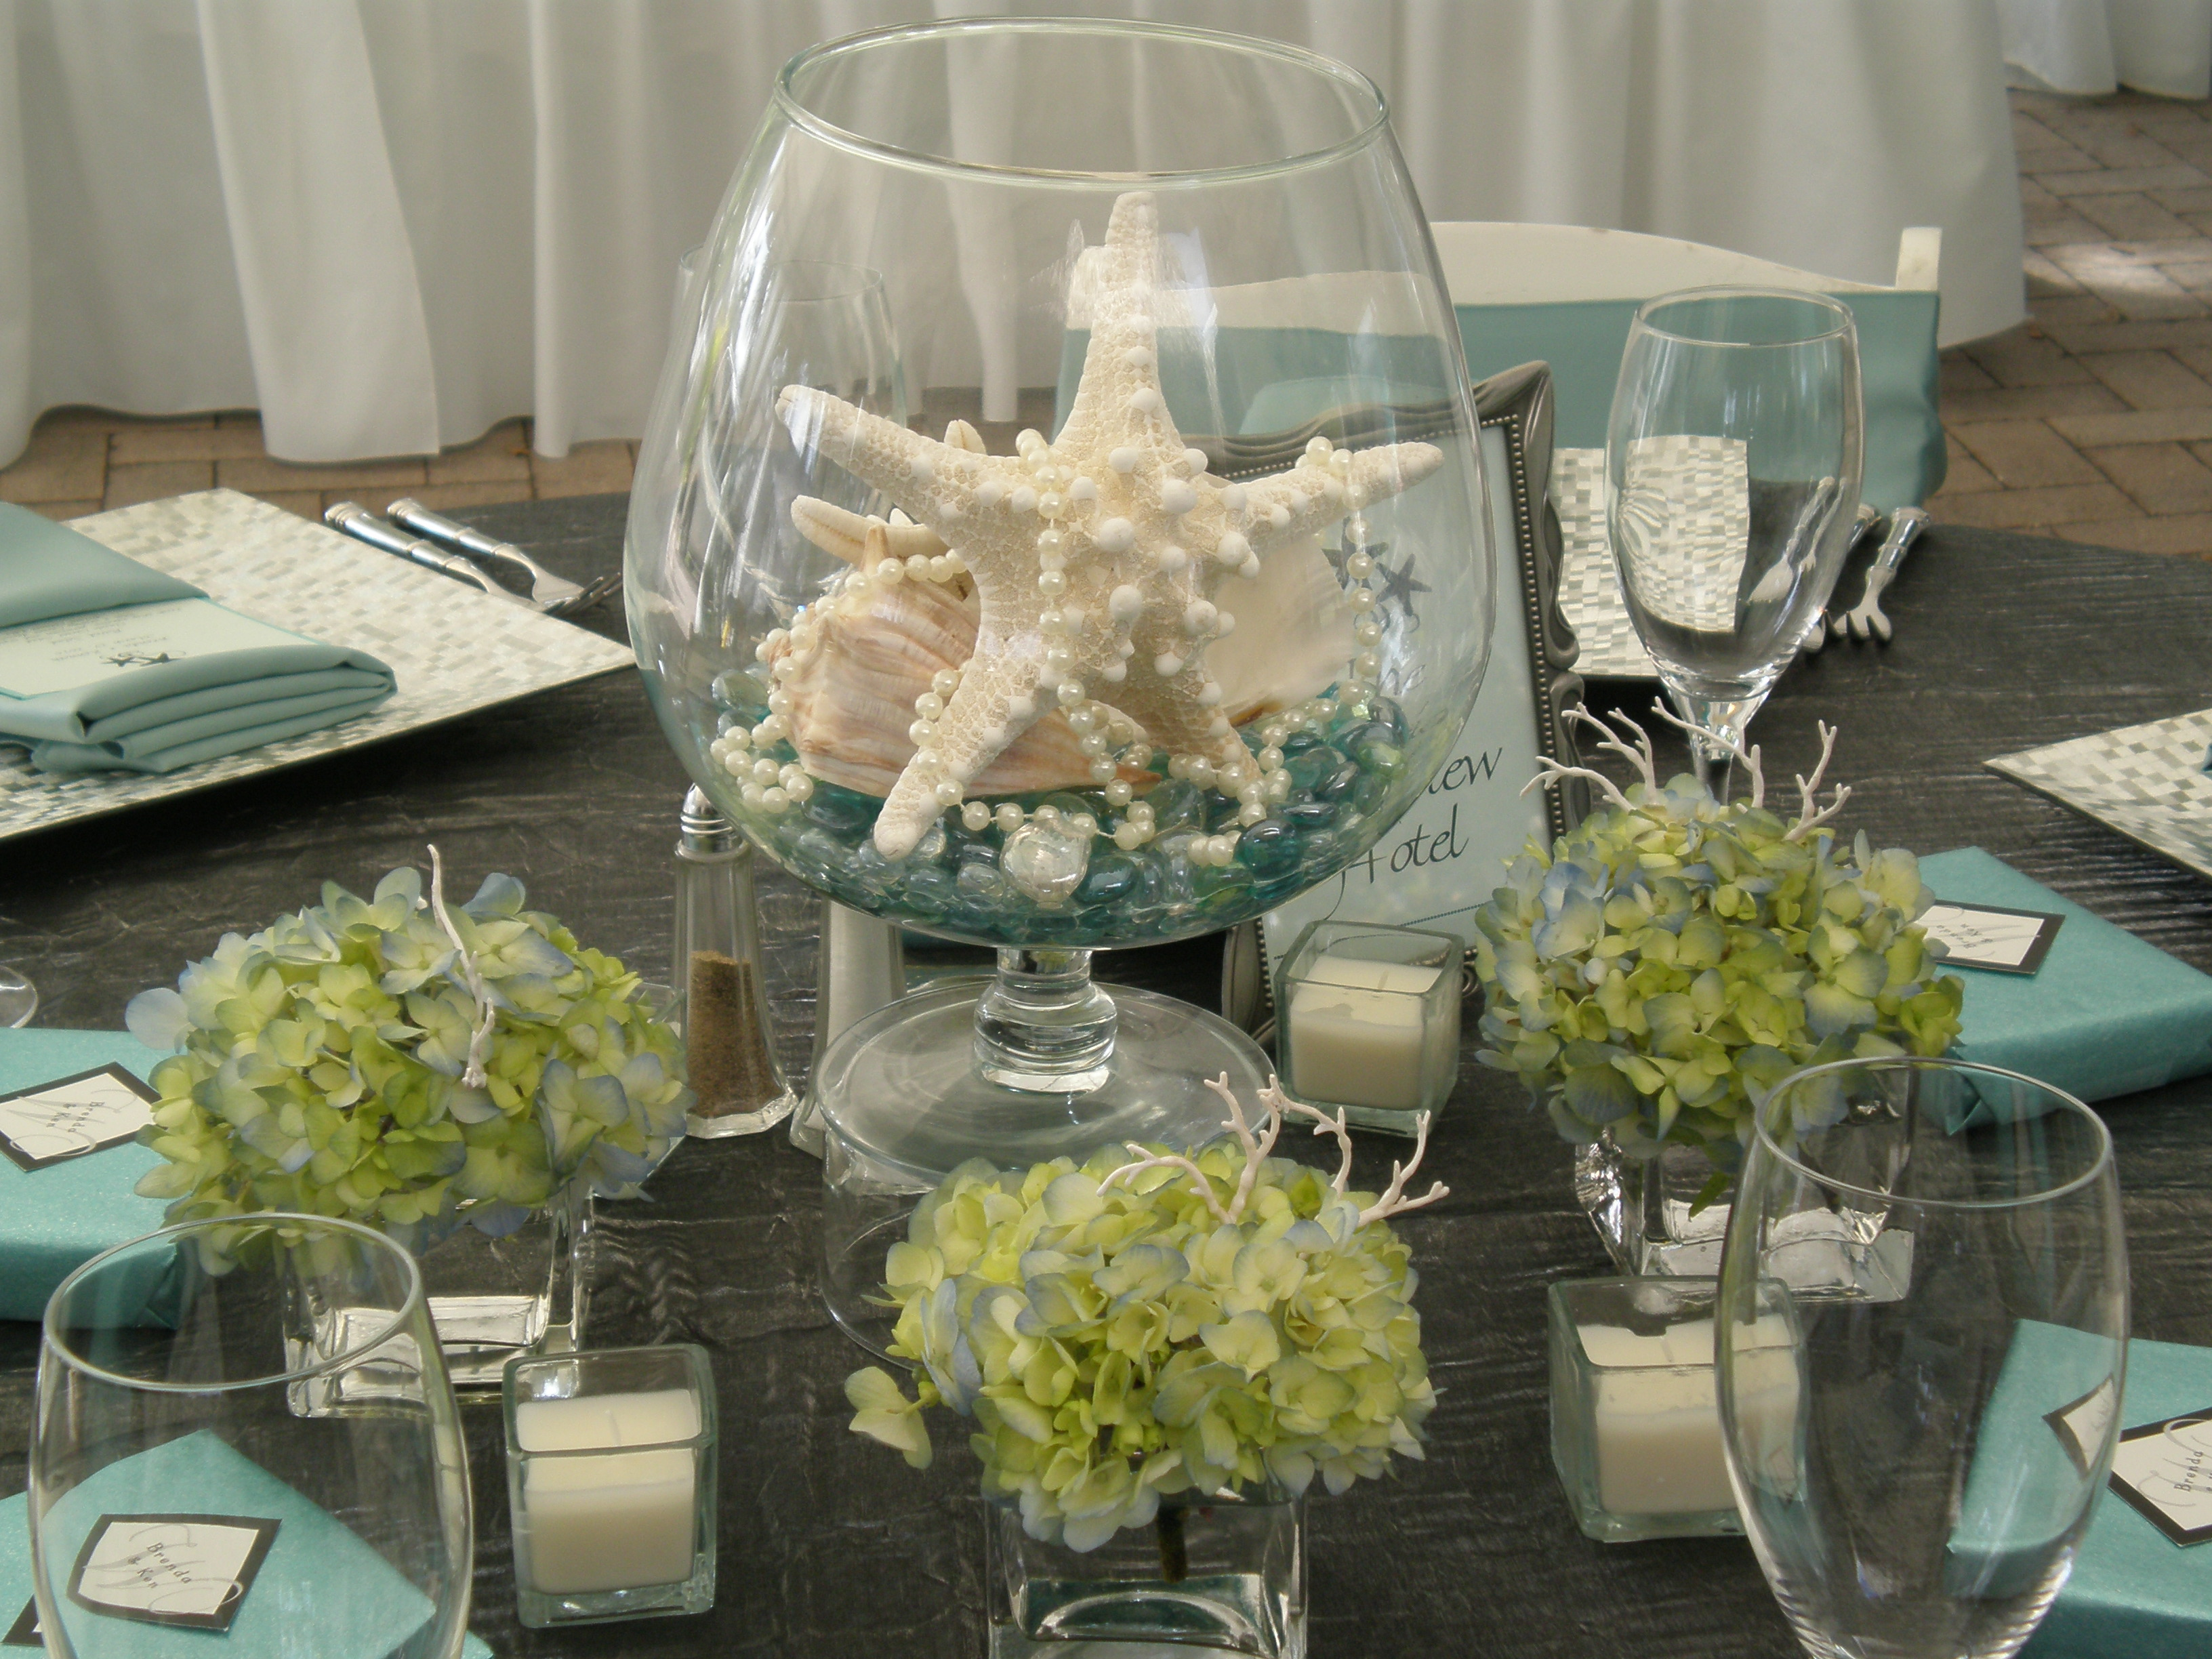 Elegant Beach Wedding Centerpieces - Dreamday Weddings Dreamday Weddings